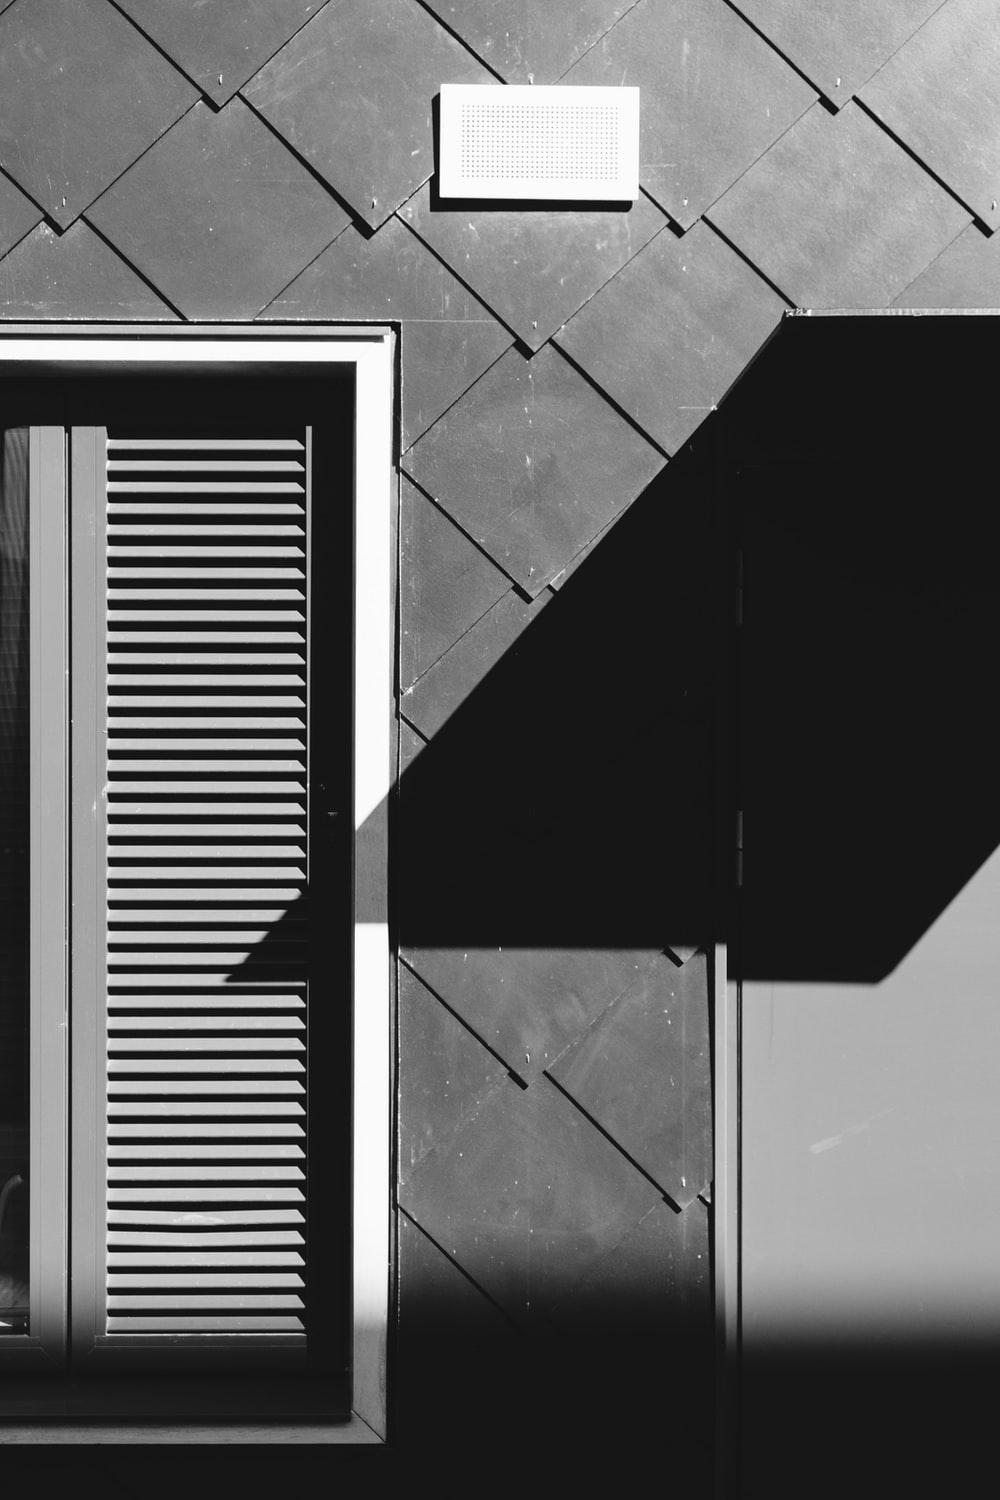 black and white photo of a window